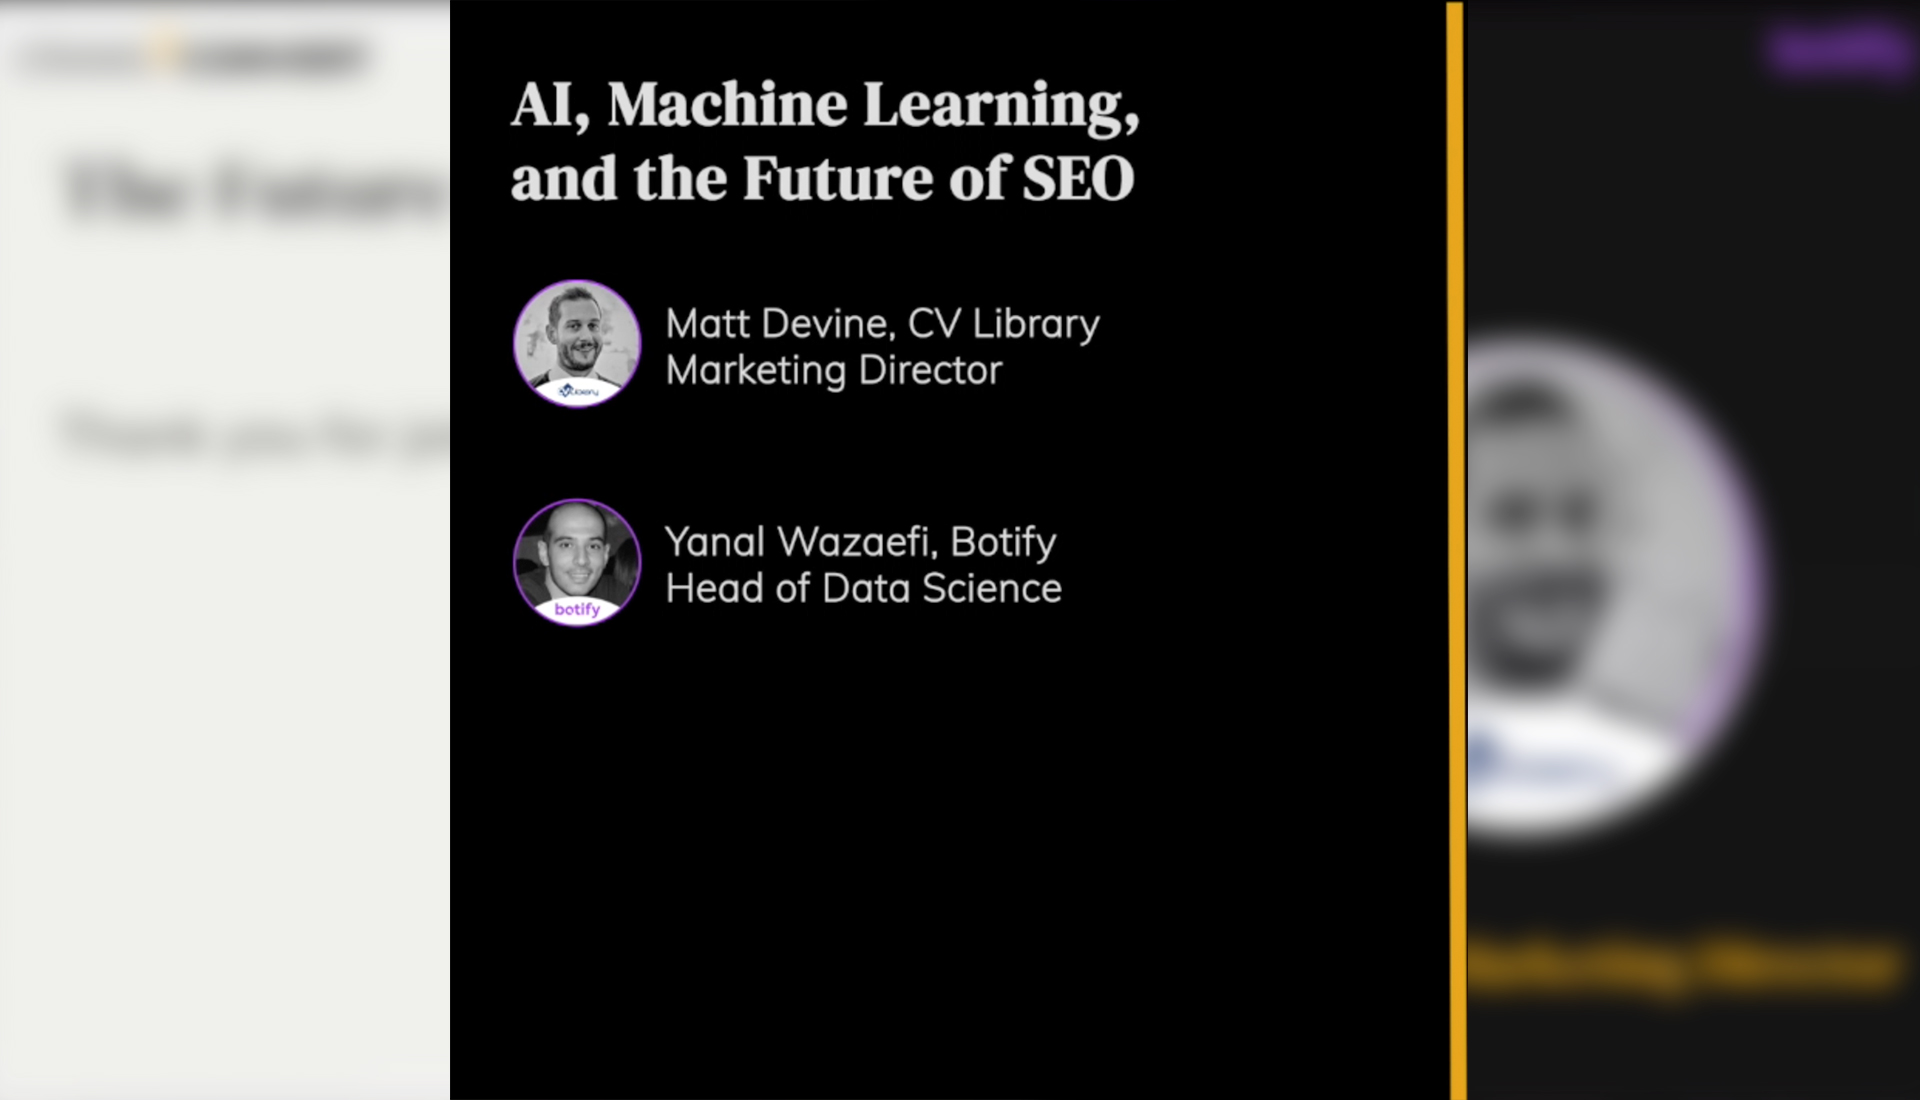 AI, Machine Learning, and the Future of SEO